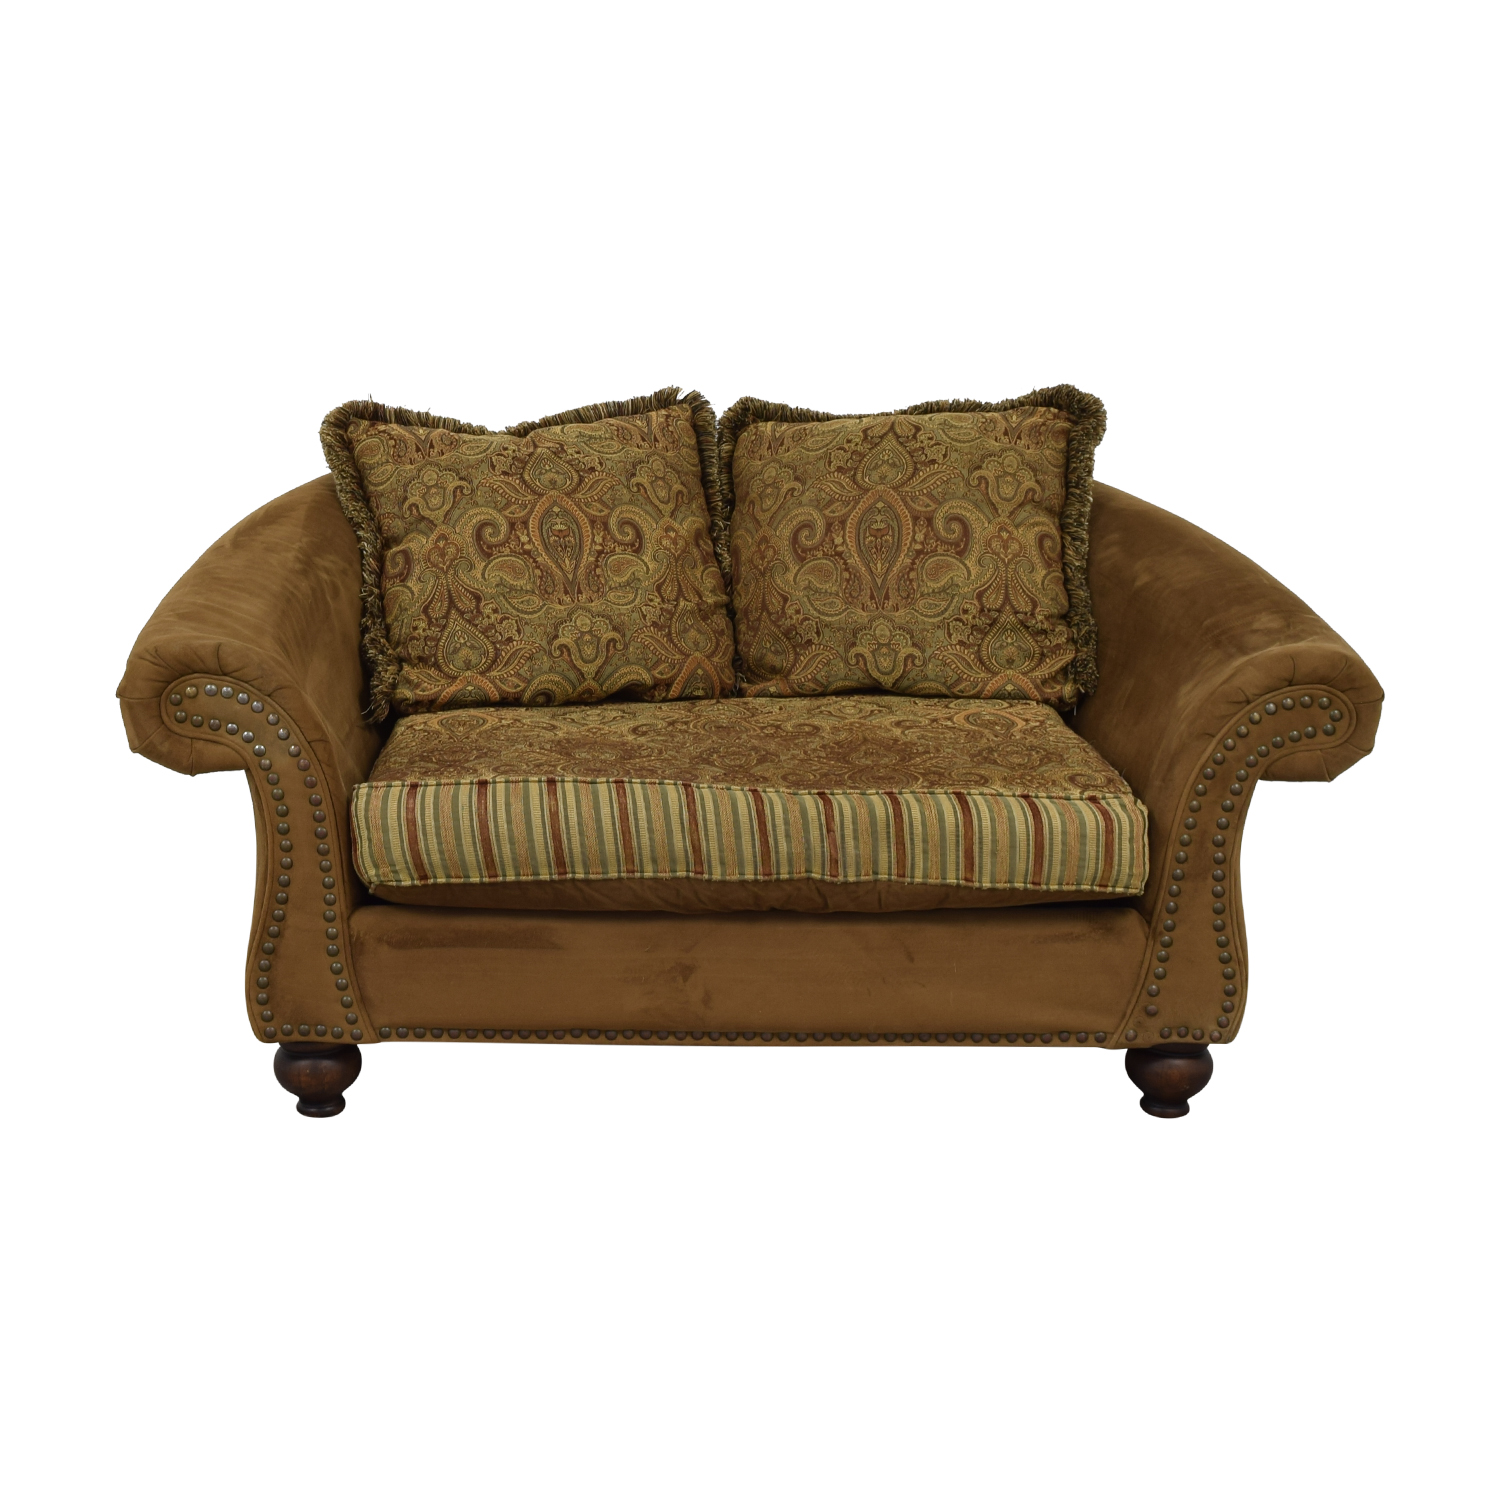 Superbe 89% OFF   Cindy Crawford Home Cindy Crawford Home Microfiber Faux Suede  Brown Nailhead Loveseat / Sofas